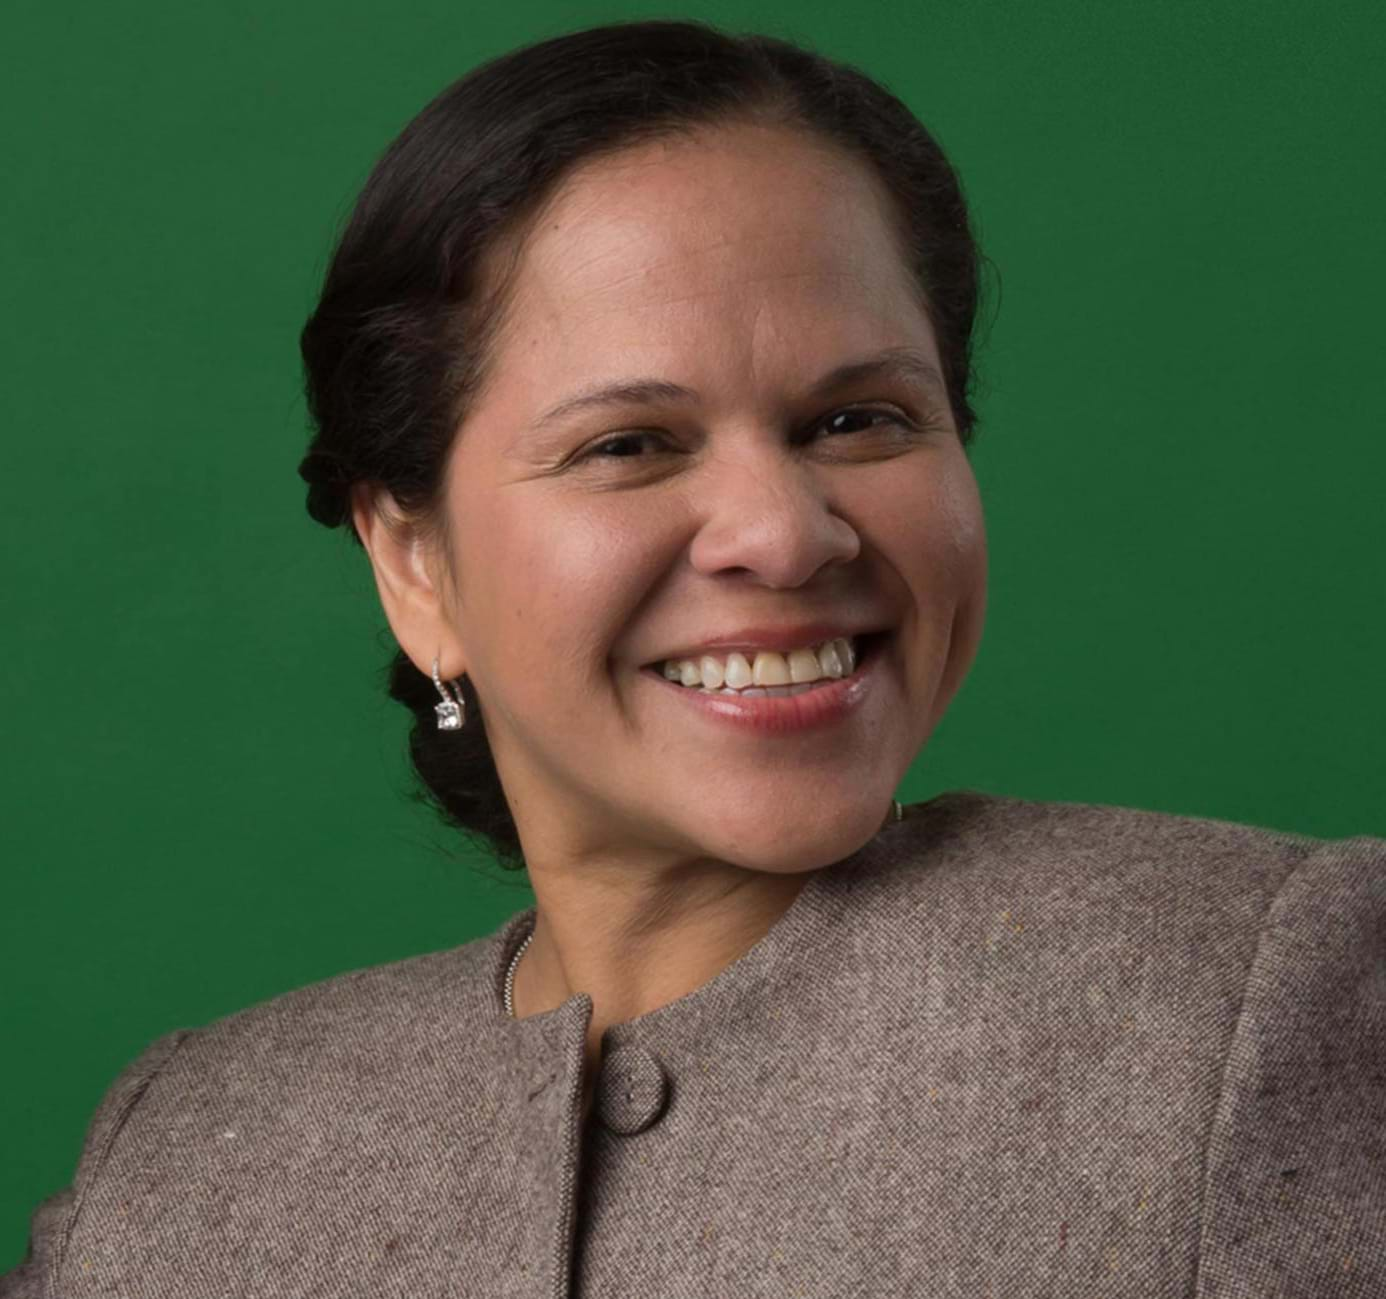 Portrait of Monica Aleman wearing a light brown top against a green background.